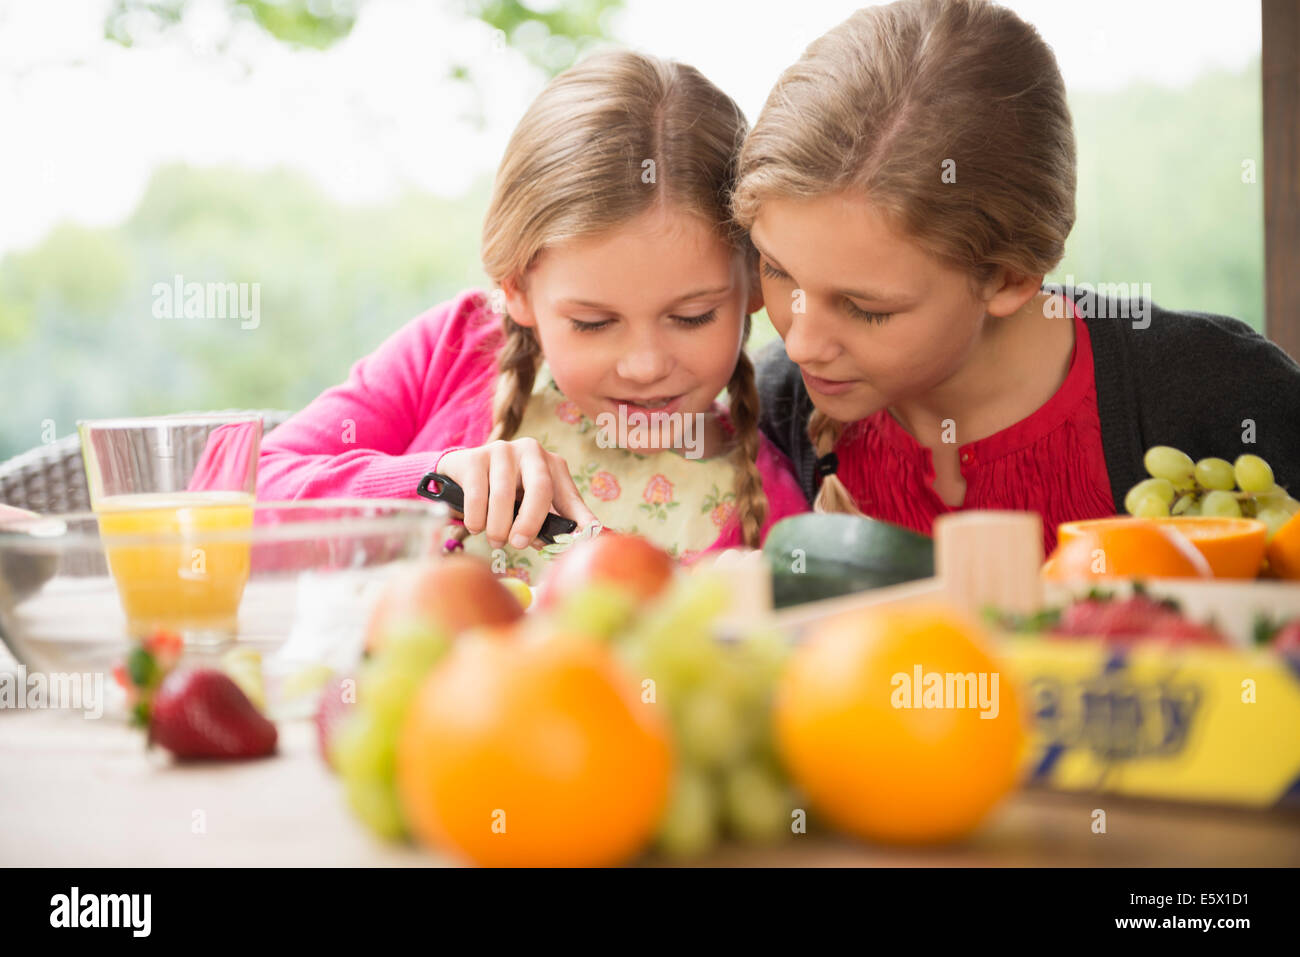 Two sisters at patio table learning to slice fresh fruit - Stock Image